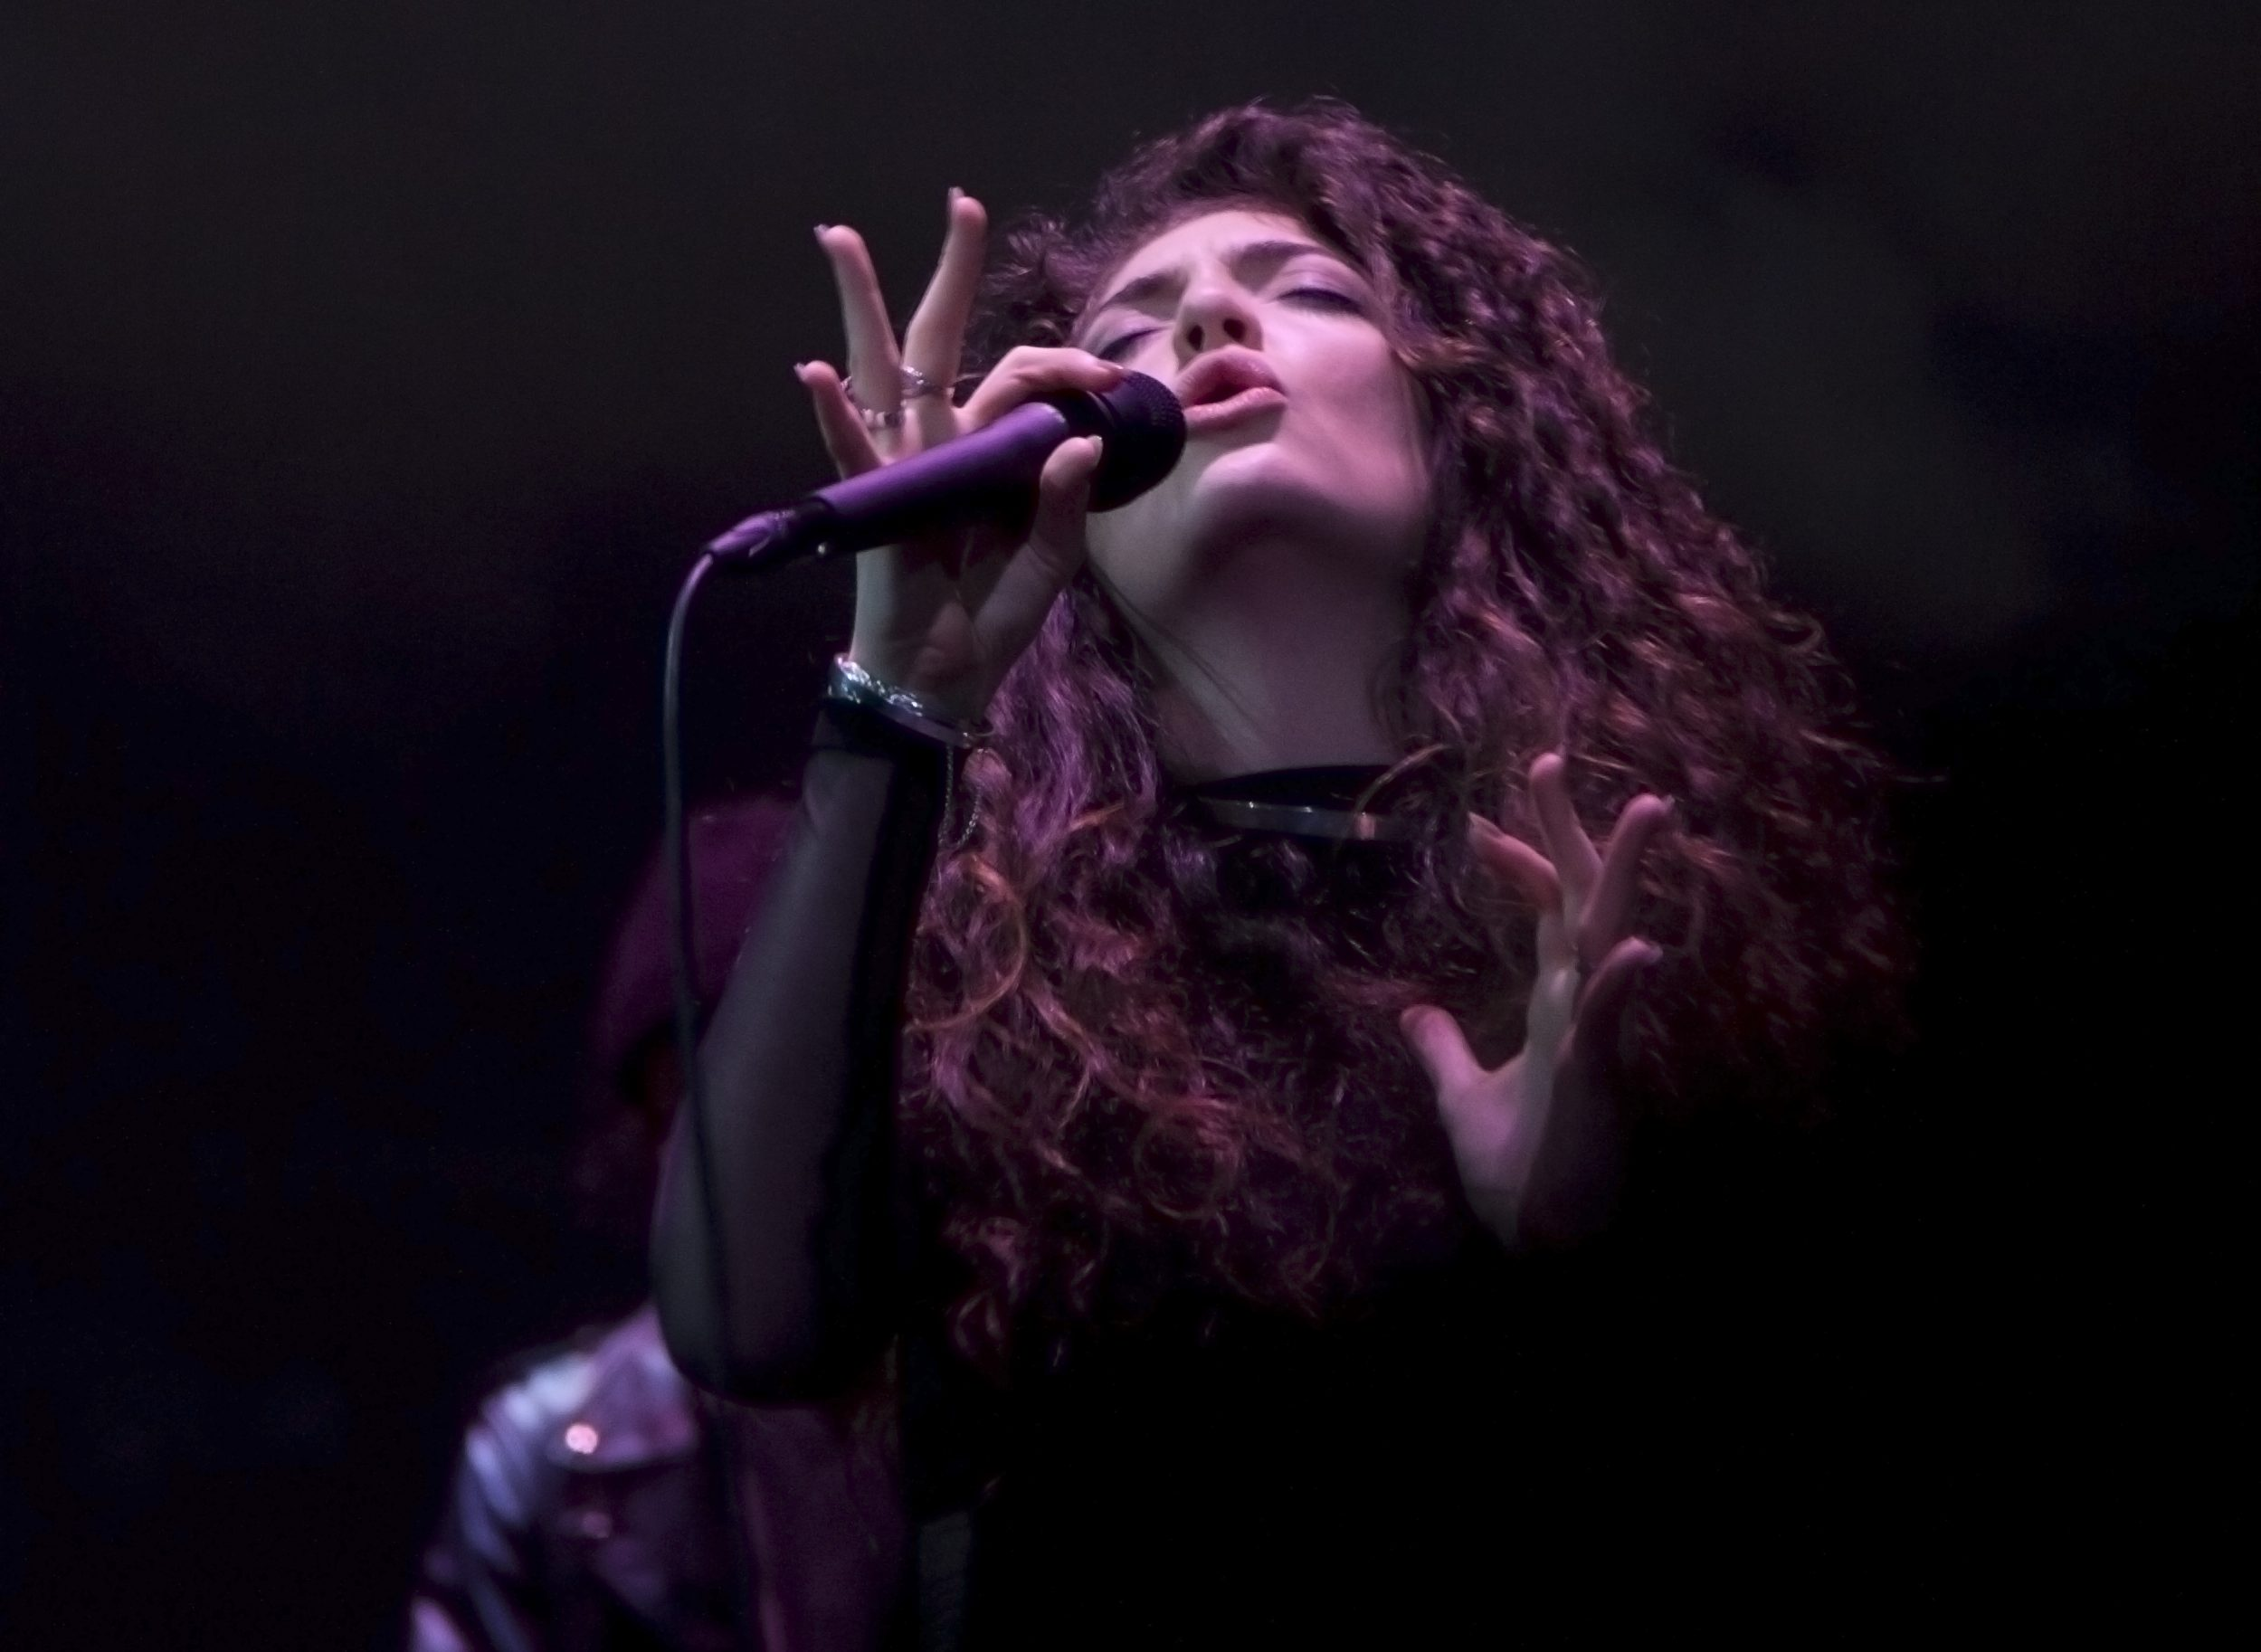 Lorde - Photo by Emma Pottinger